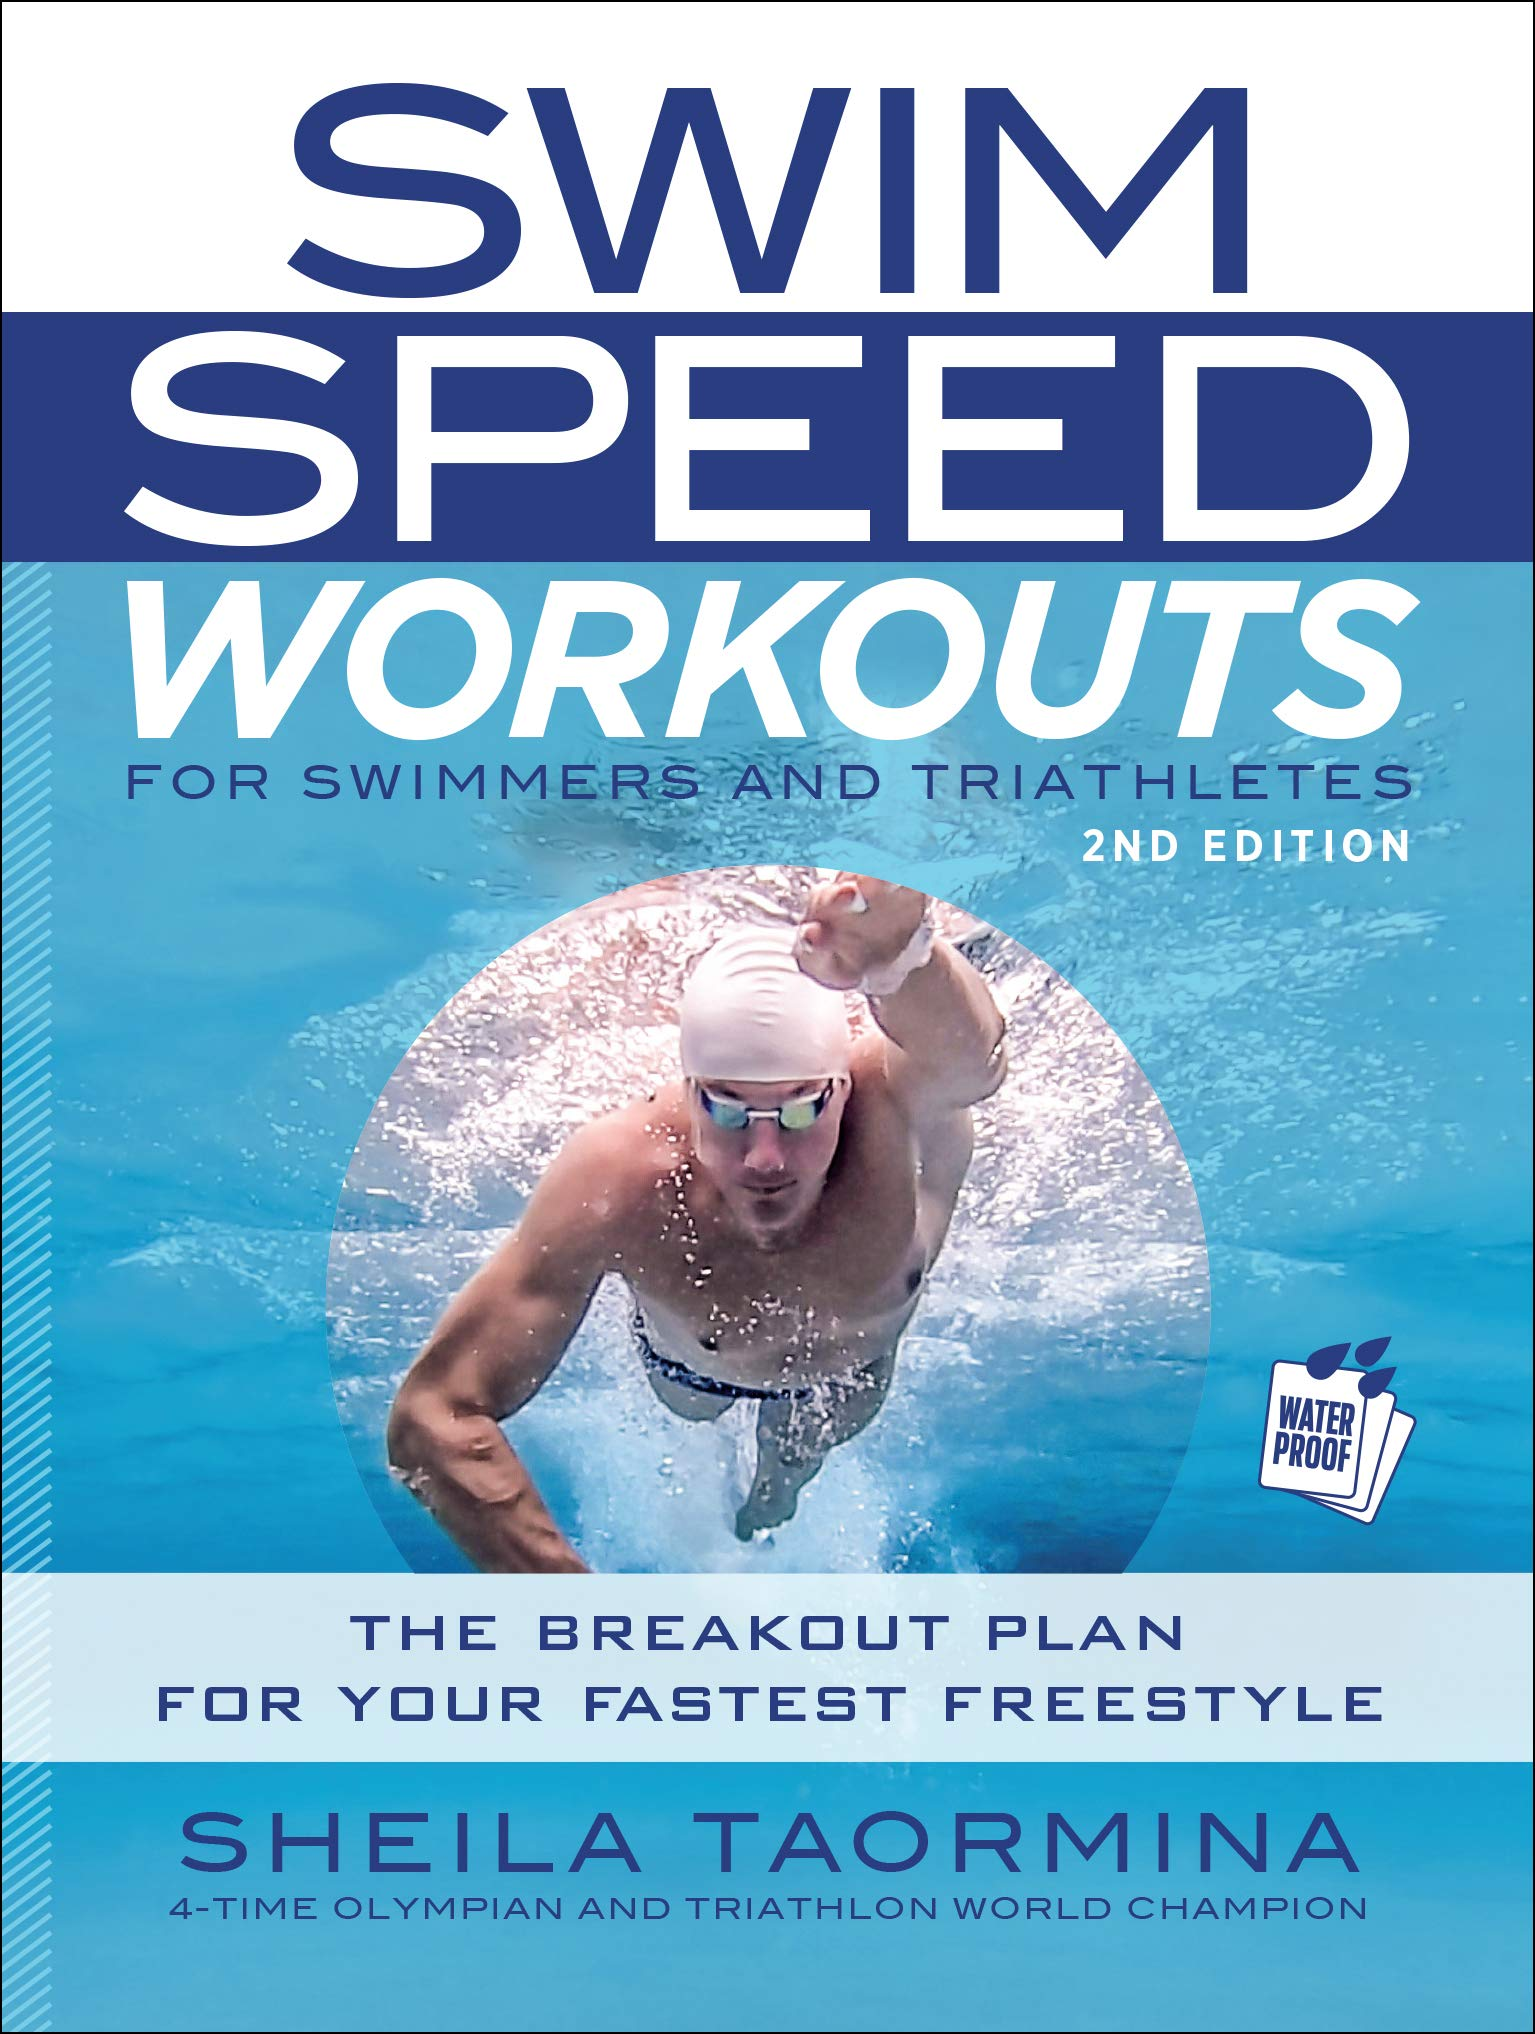 Swim Speed Workouts For Swimmers And Triathletes  The Breakout Plan For Your Fastest Freestyle